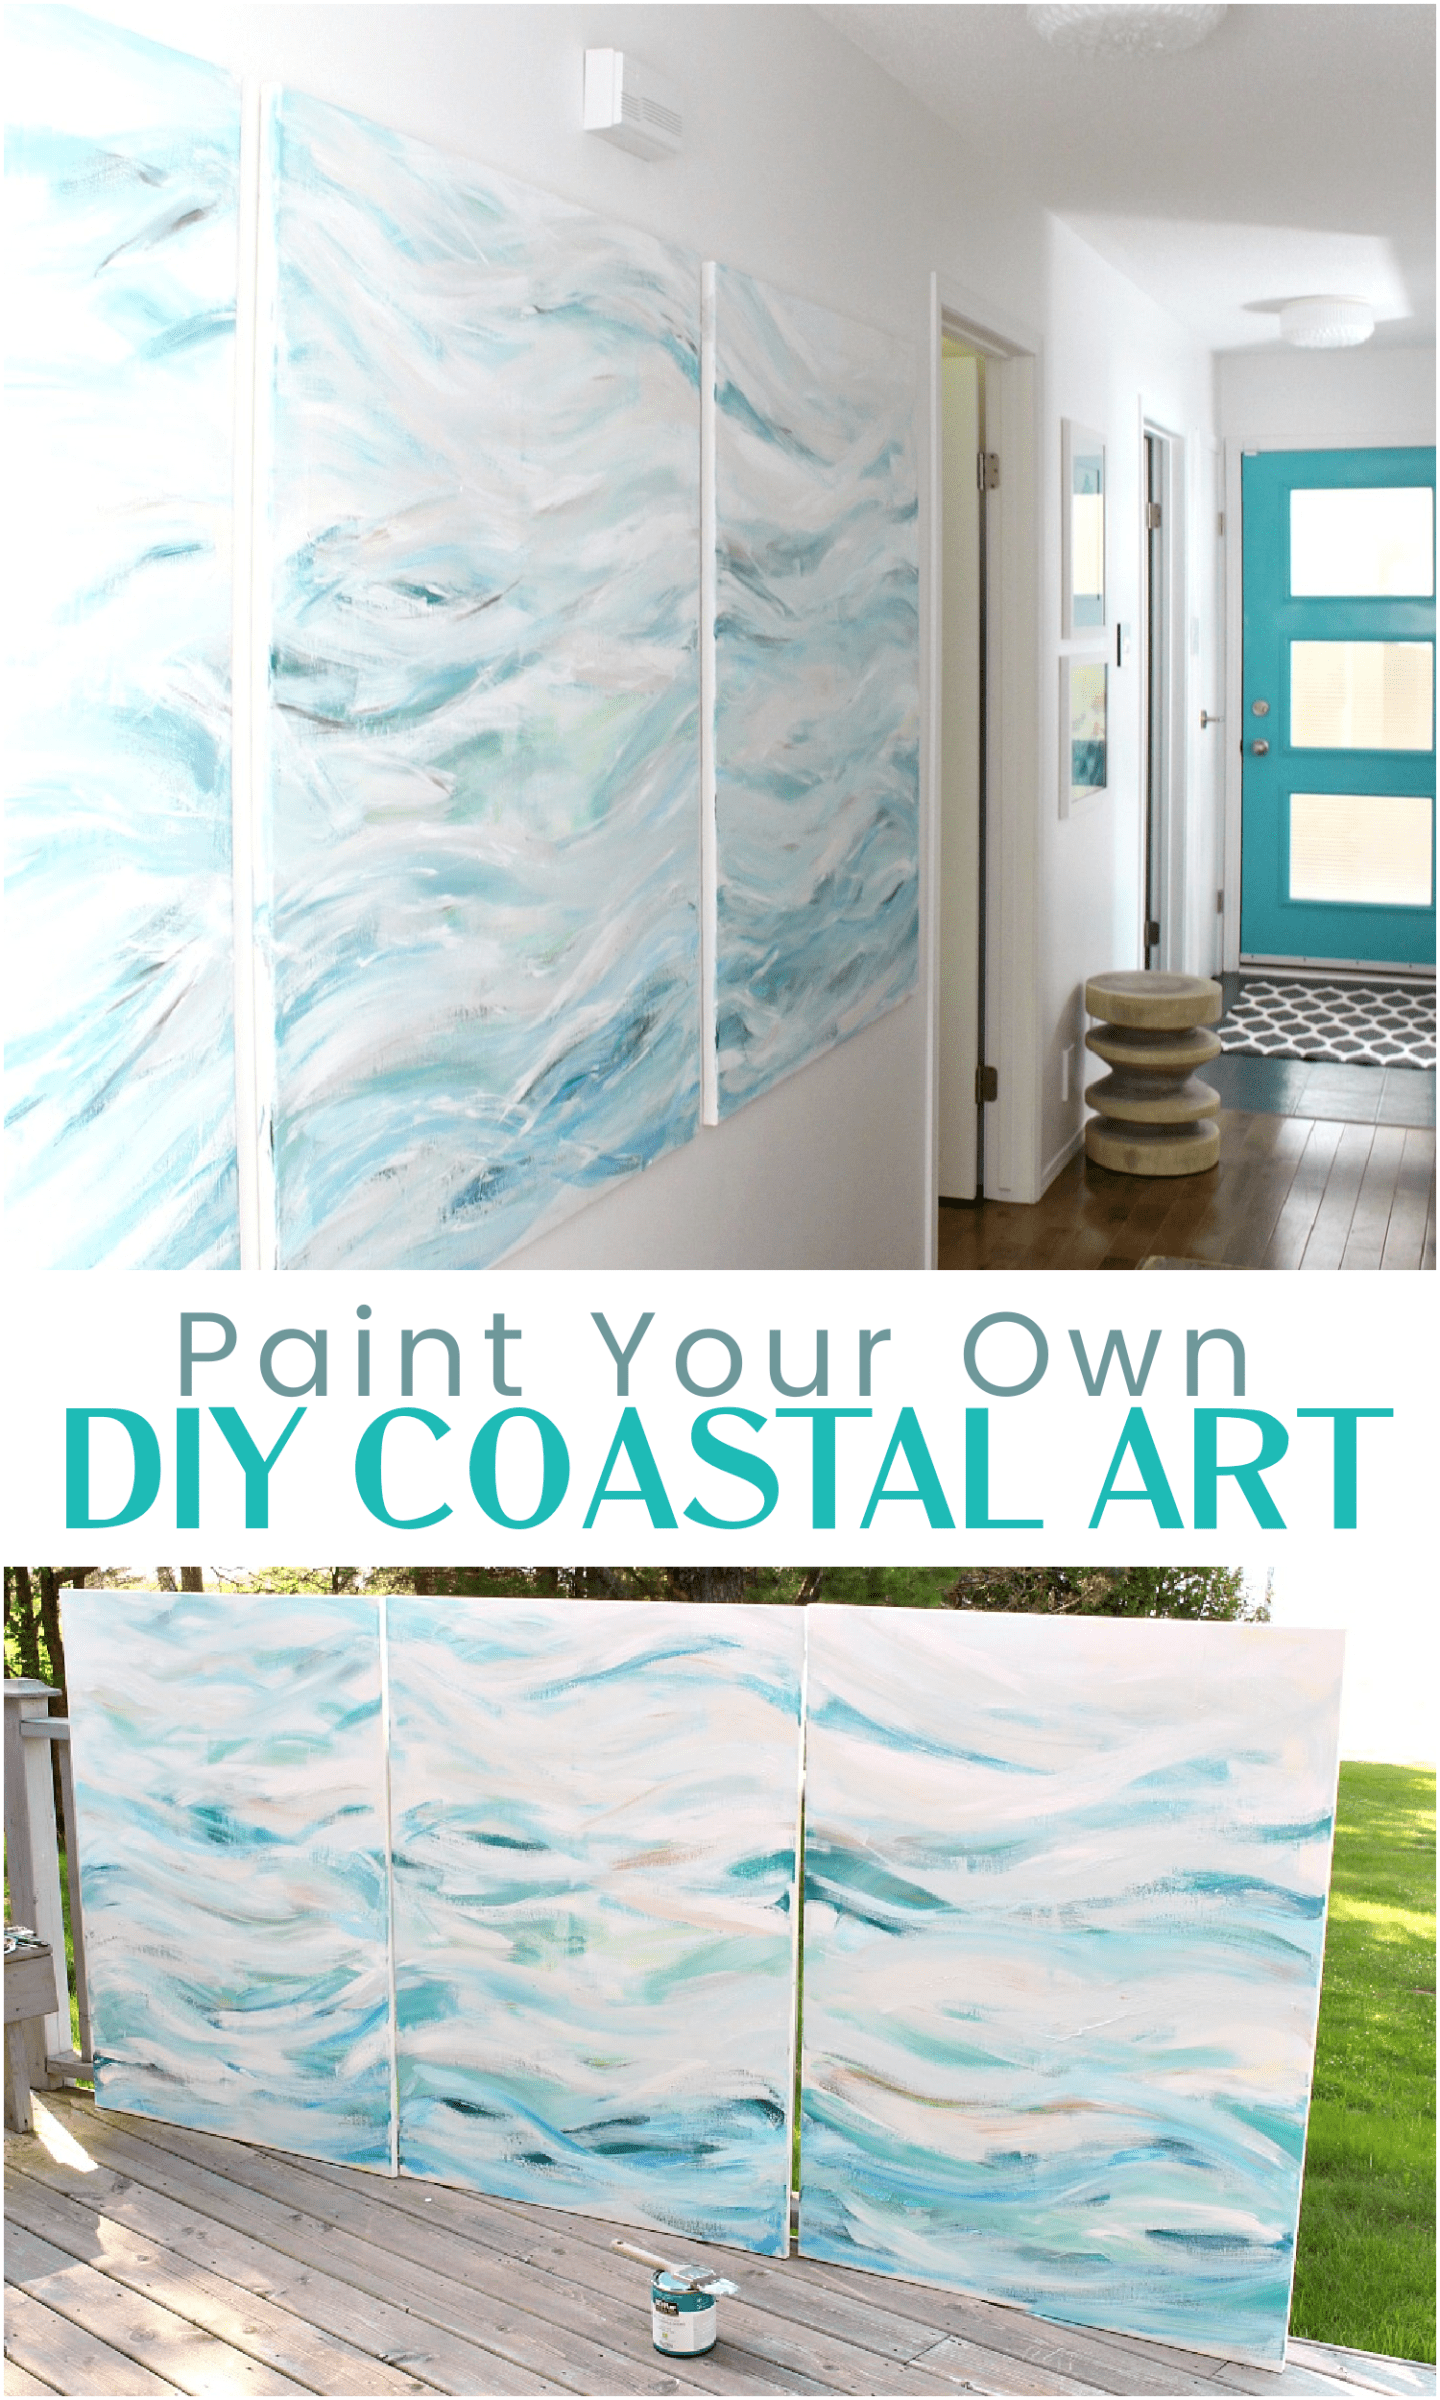 Learn How to Paint Your Own Coastal Art